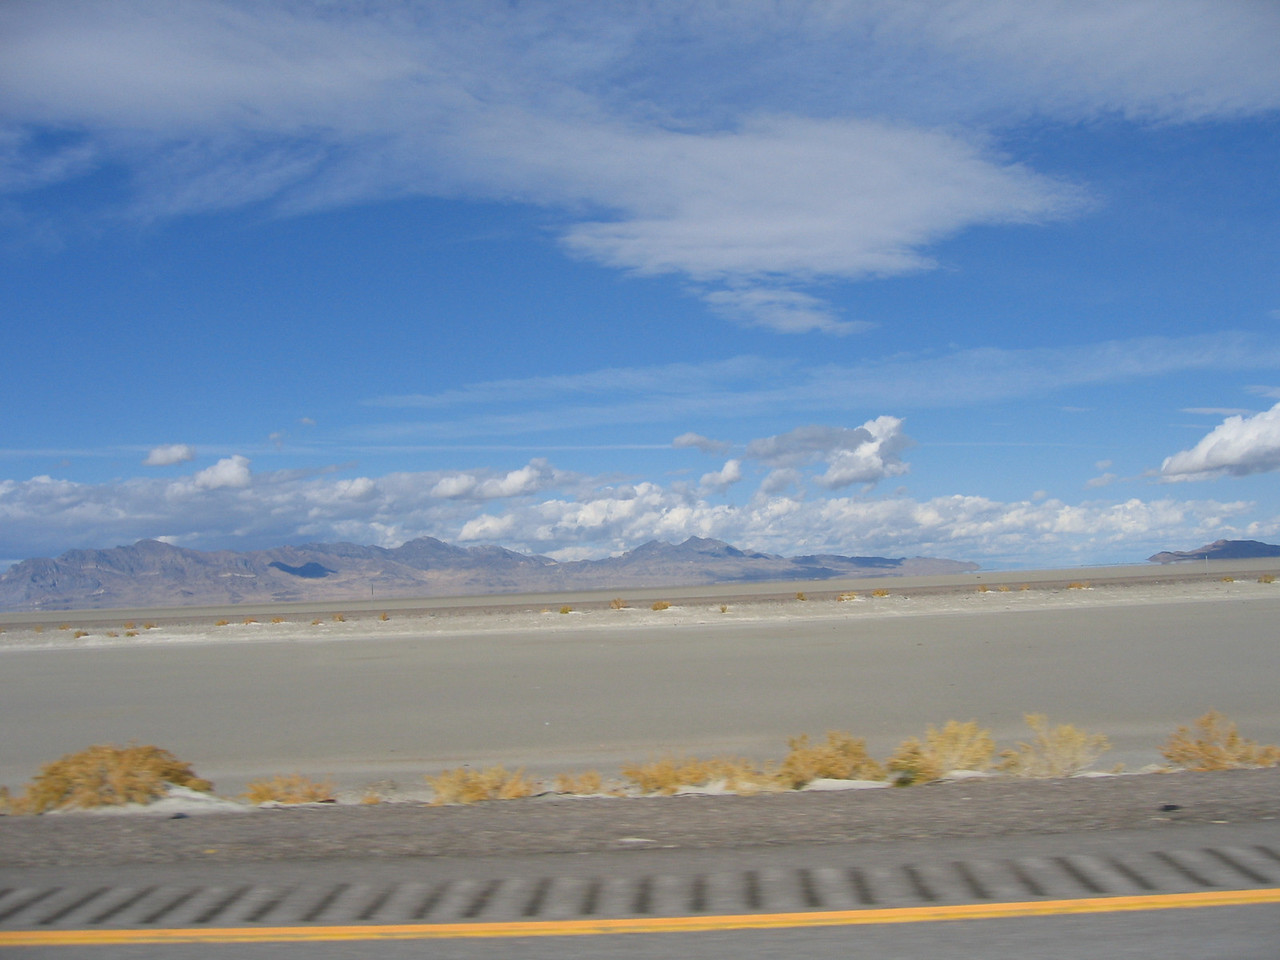 The mountains north of the salt flats.